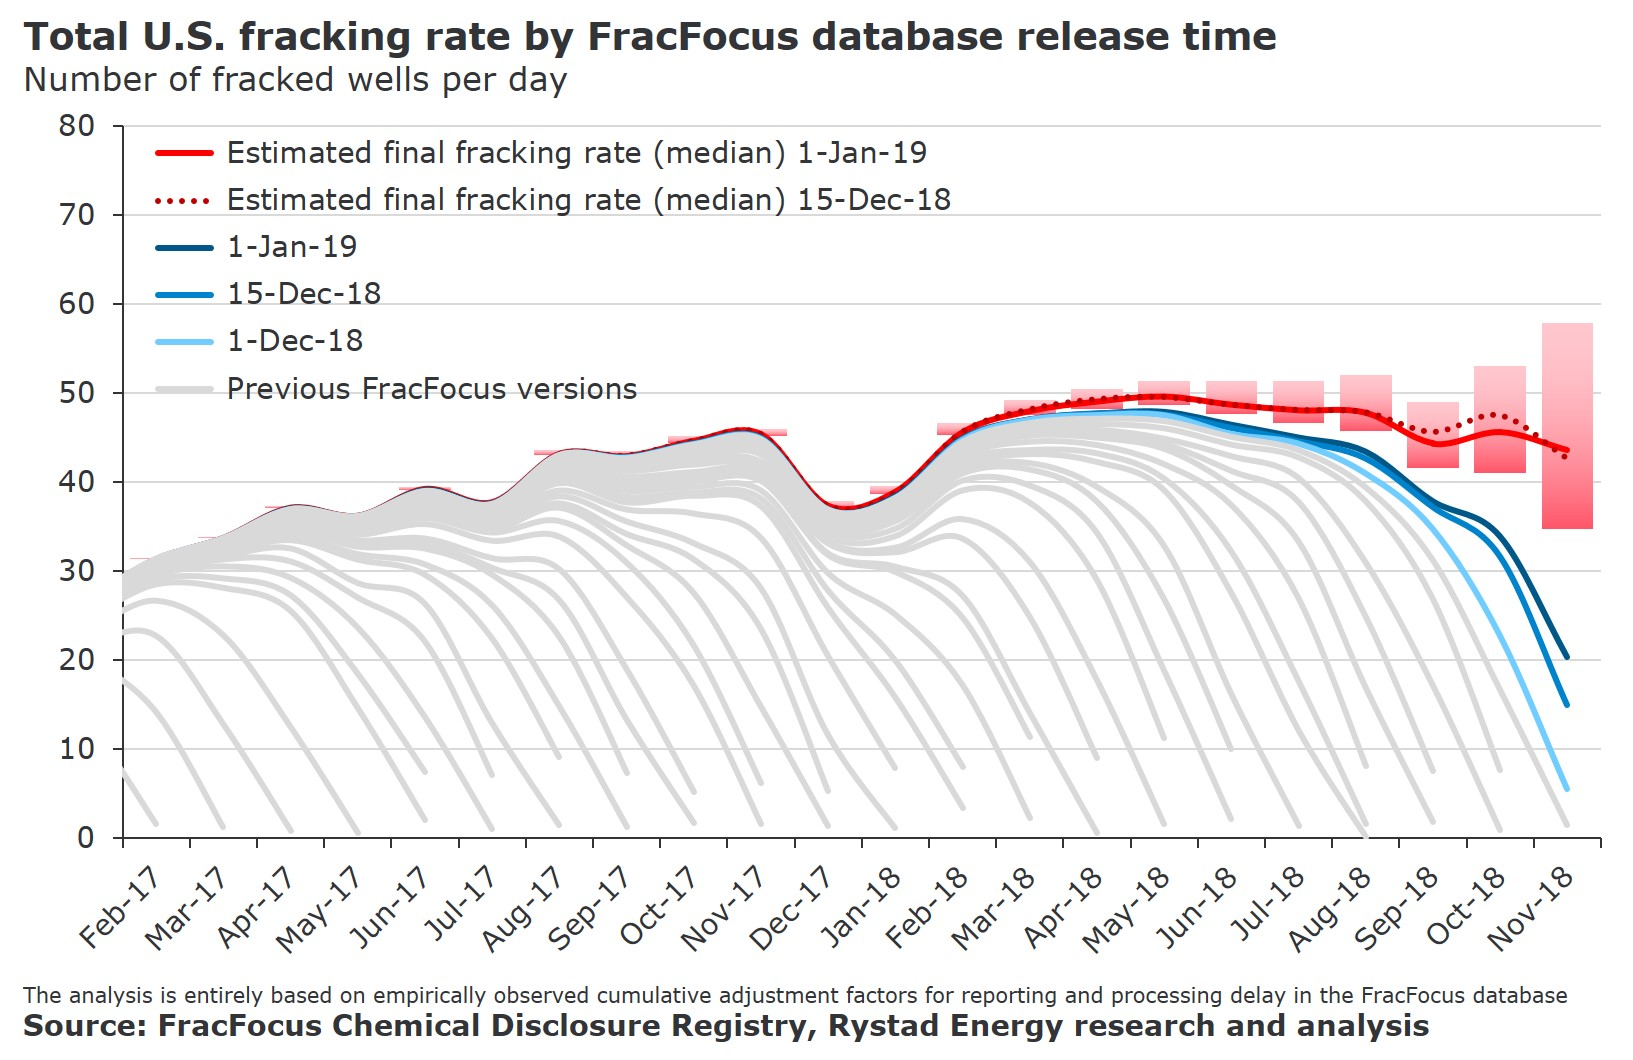 A graph showing the total U.S. fracking rate by GracFocus database release time in number of fracked wells per day from Feb-17 to Nov-18. SOurce: FracFocus Chemical Disclosure Registry, Rystad Energy research and analysis